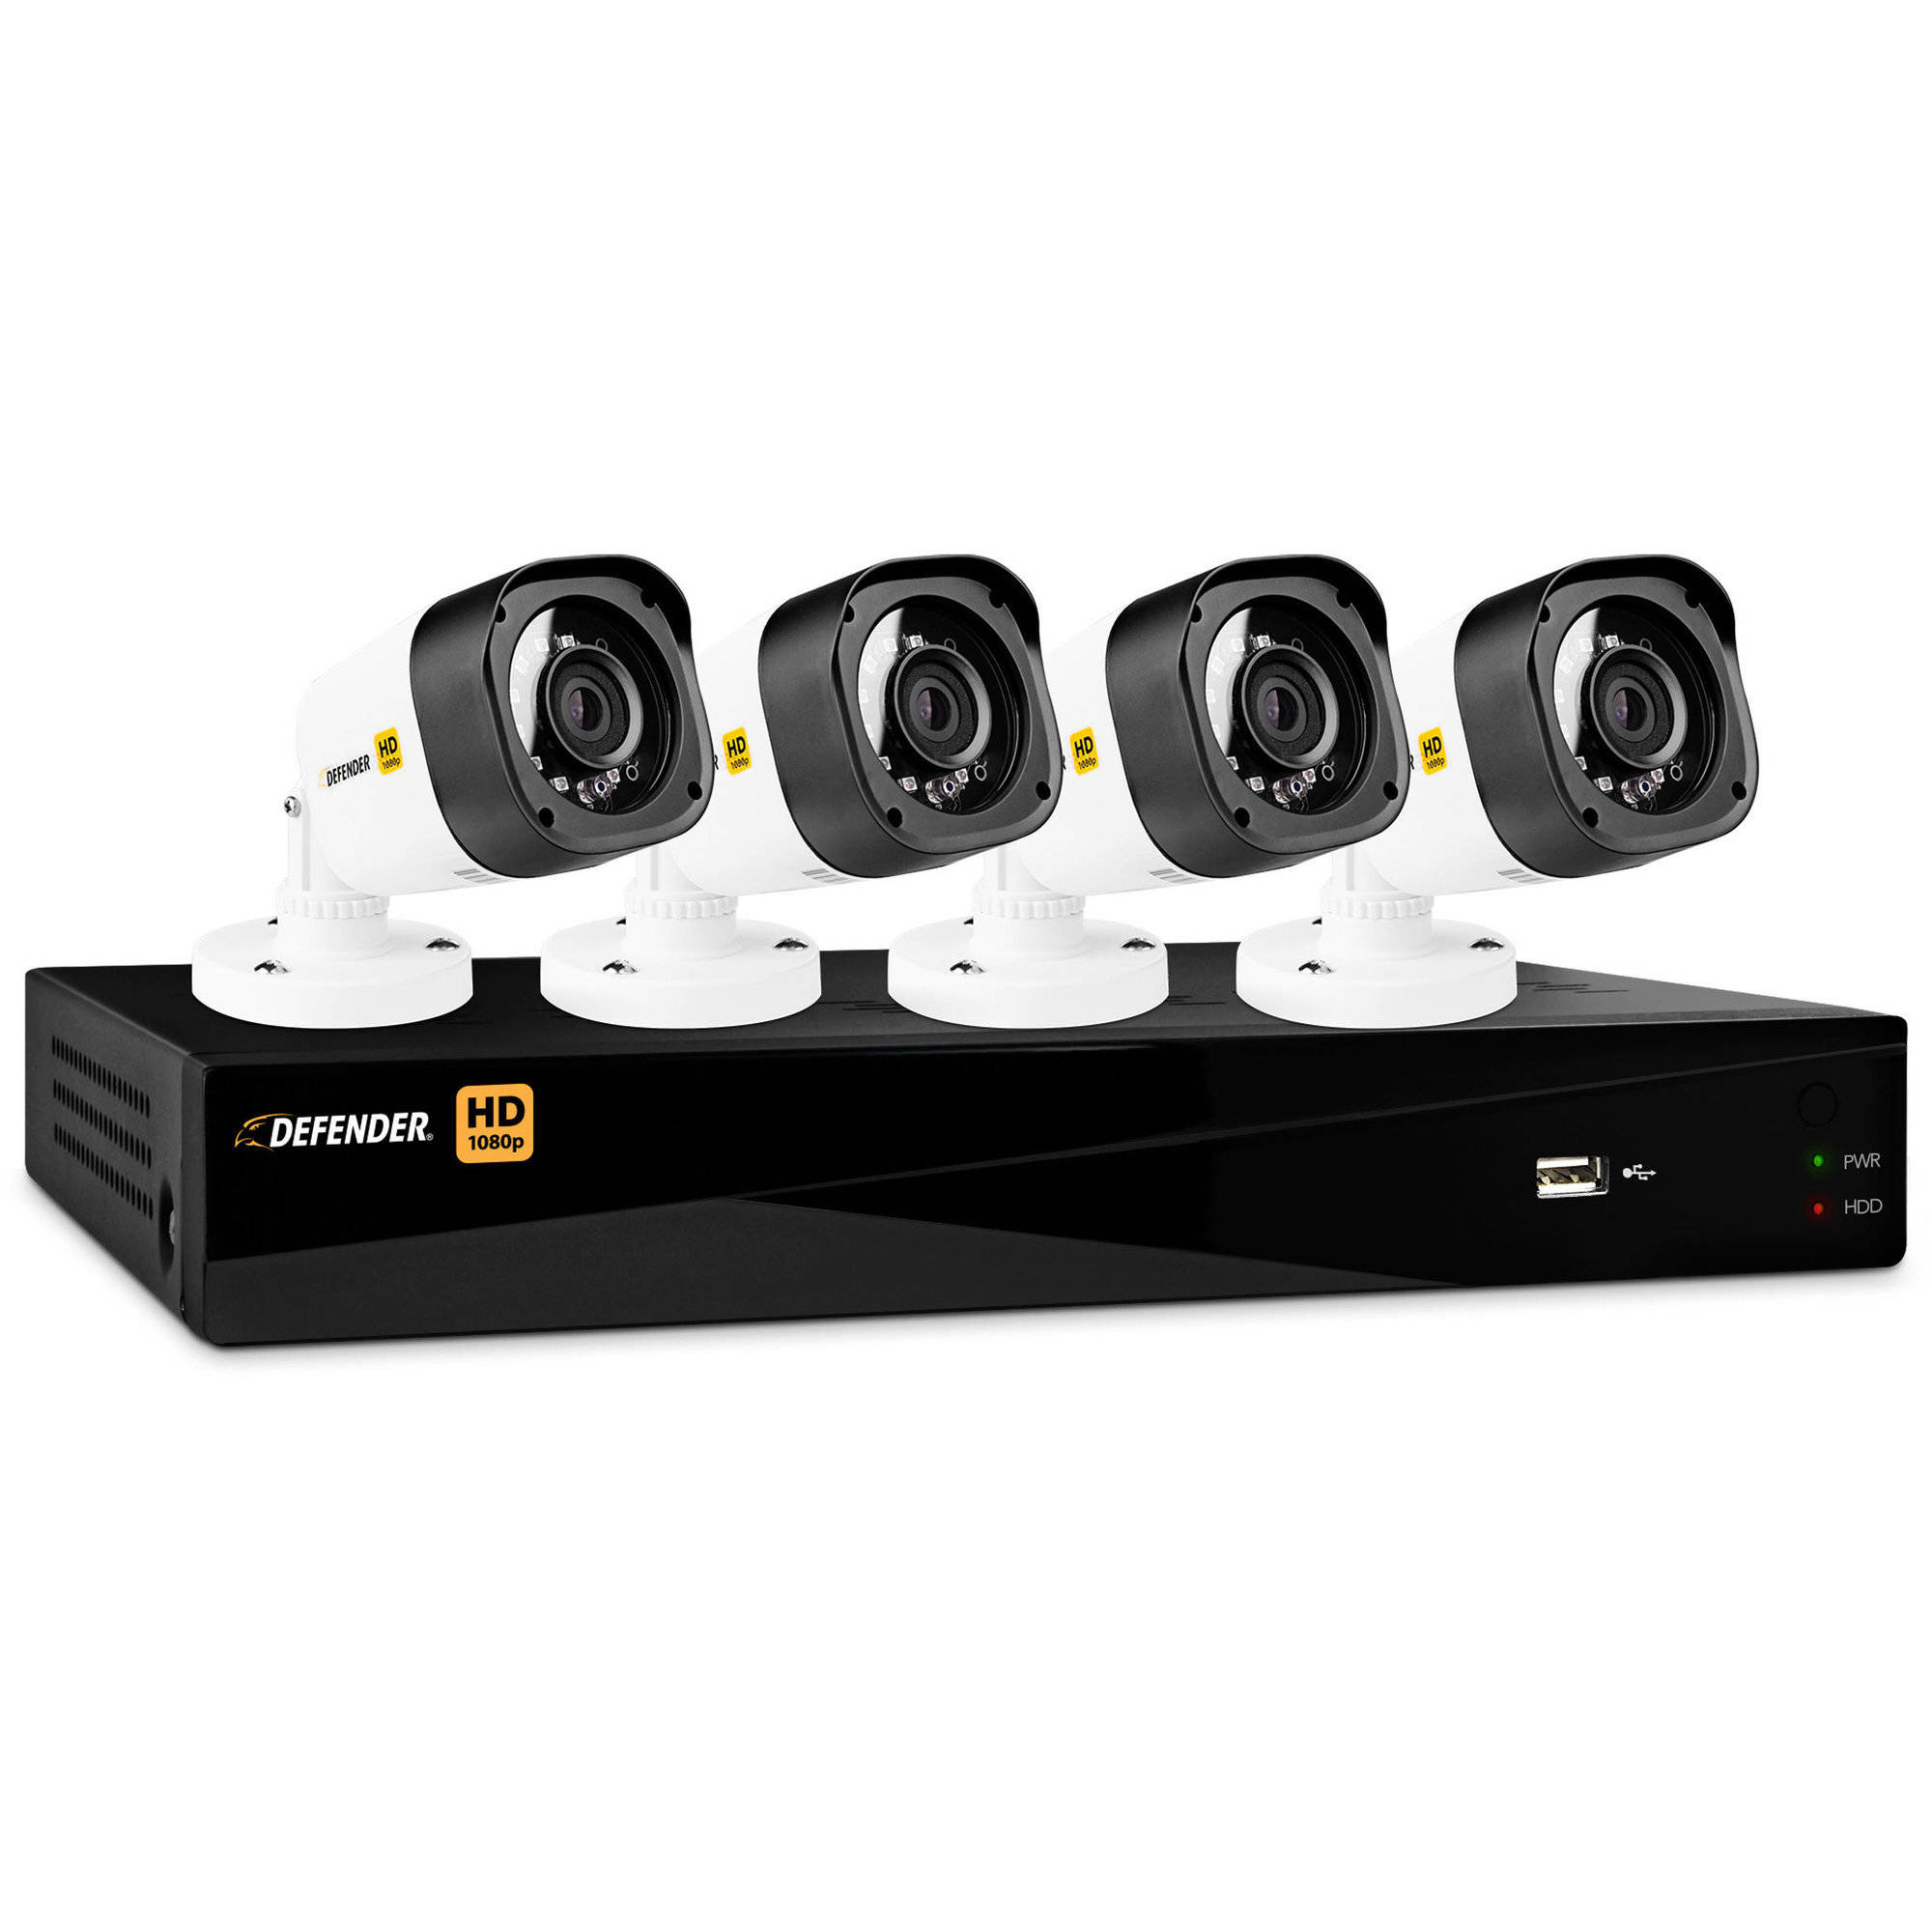 Defender Hd 1080p 4 Channel 1tb Dvr Security System With Bullet Standalone Cameras